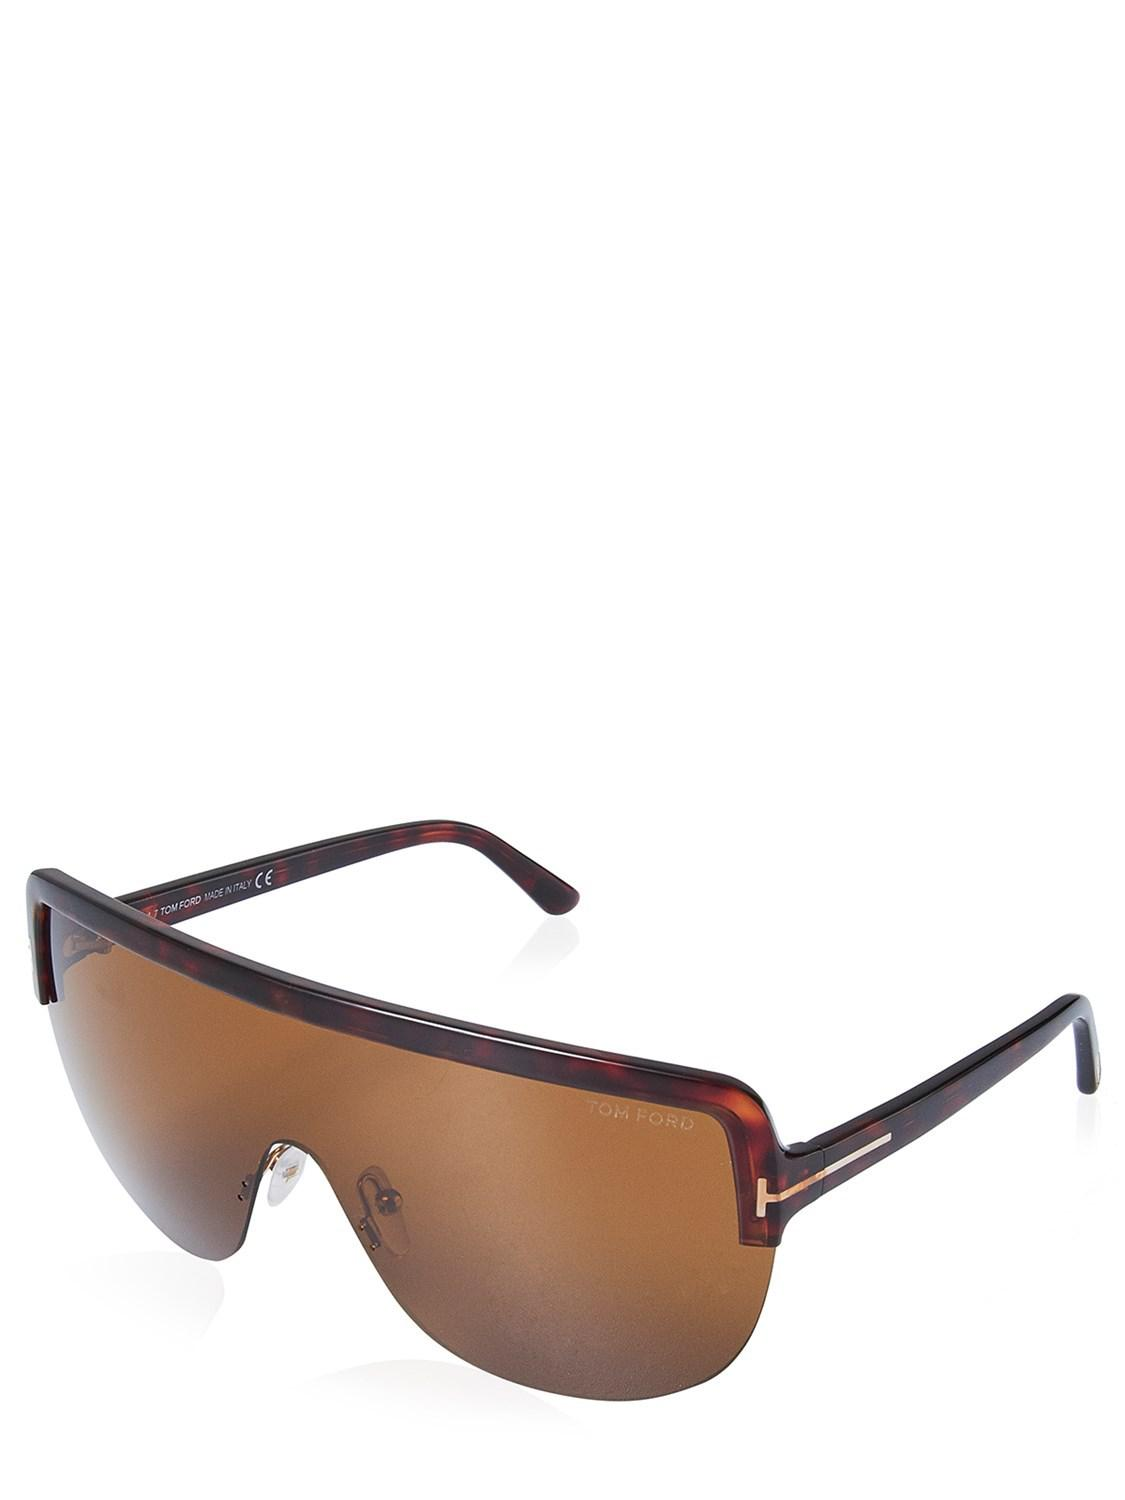 b563b0178f99 Lyst - Tom Ford Sunglasses Brown Ft0560 s in Brown for Men